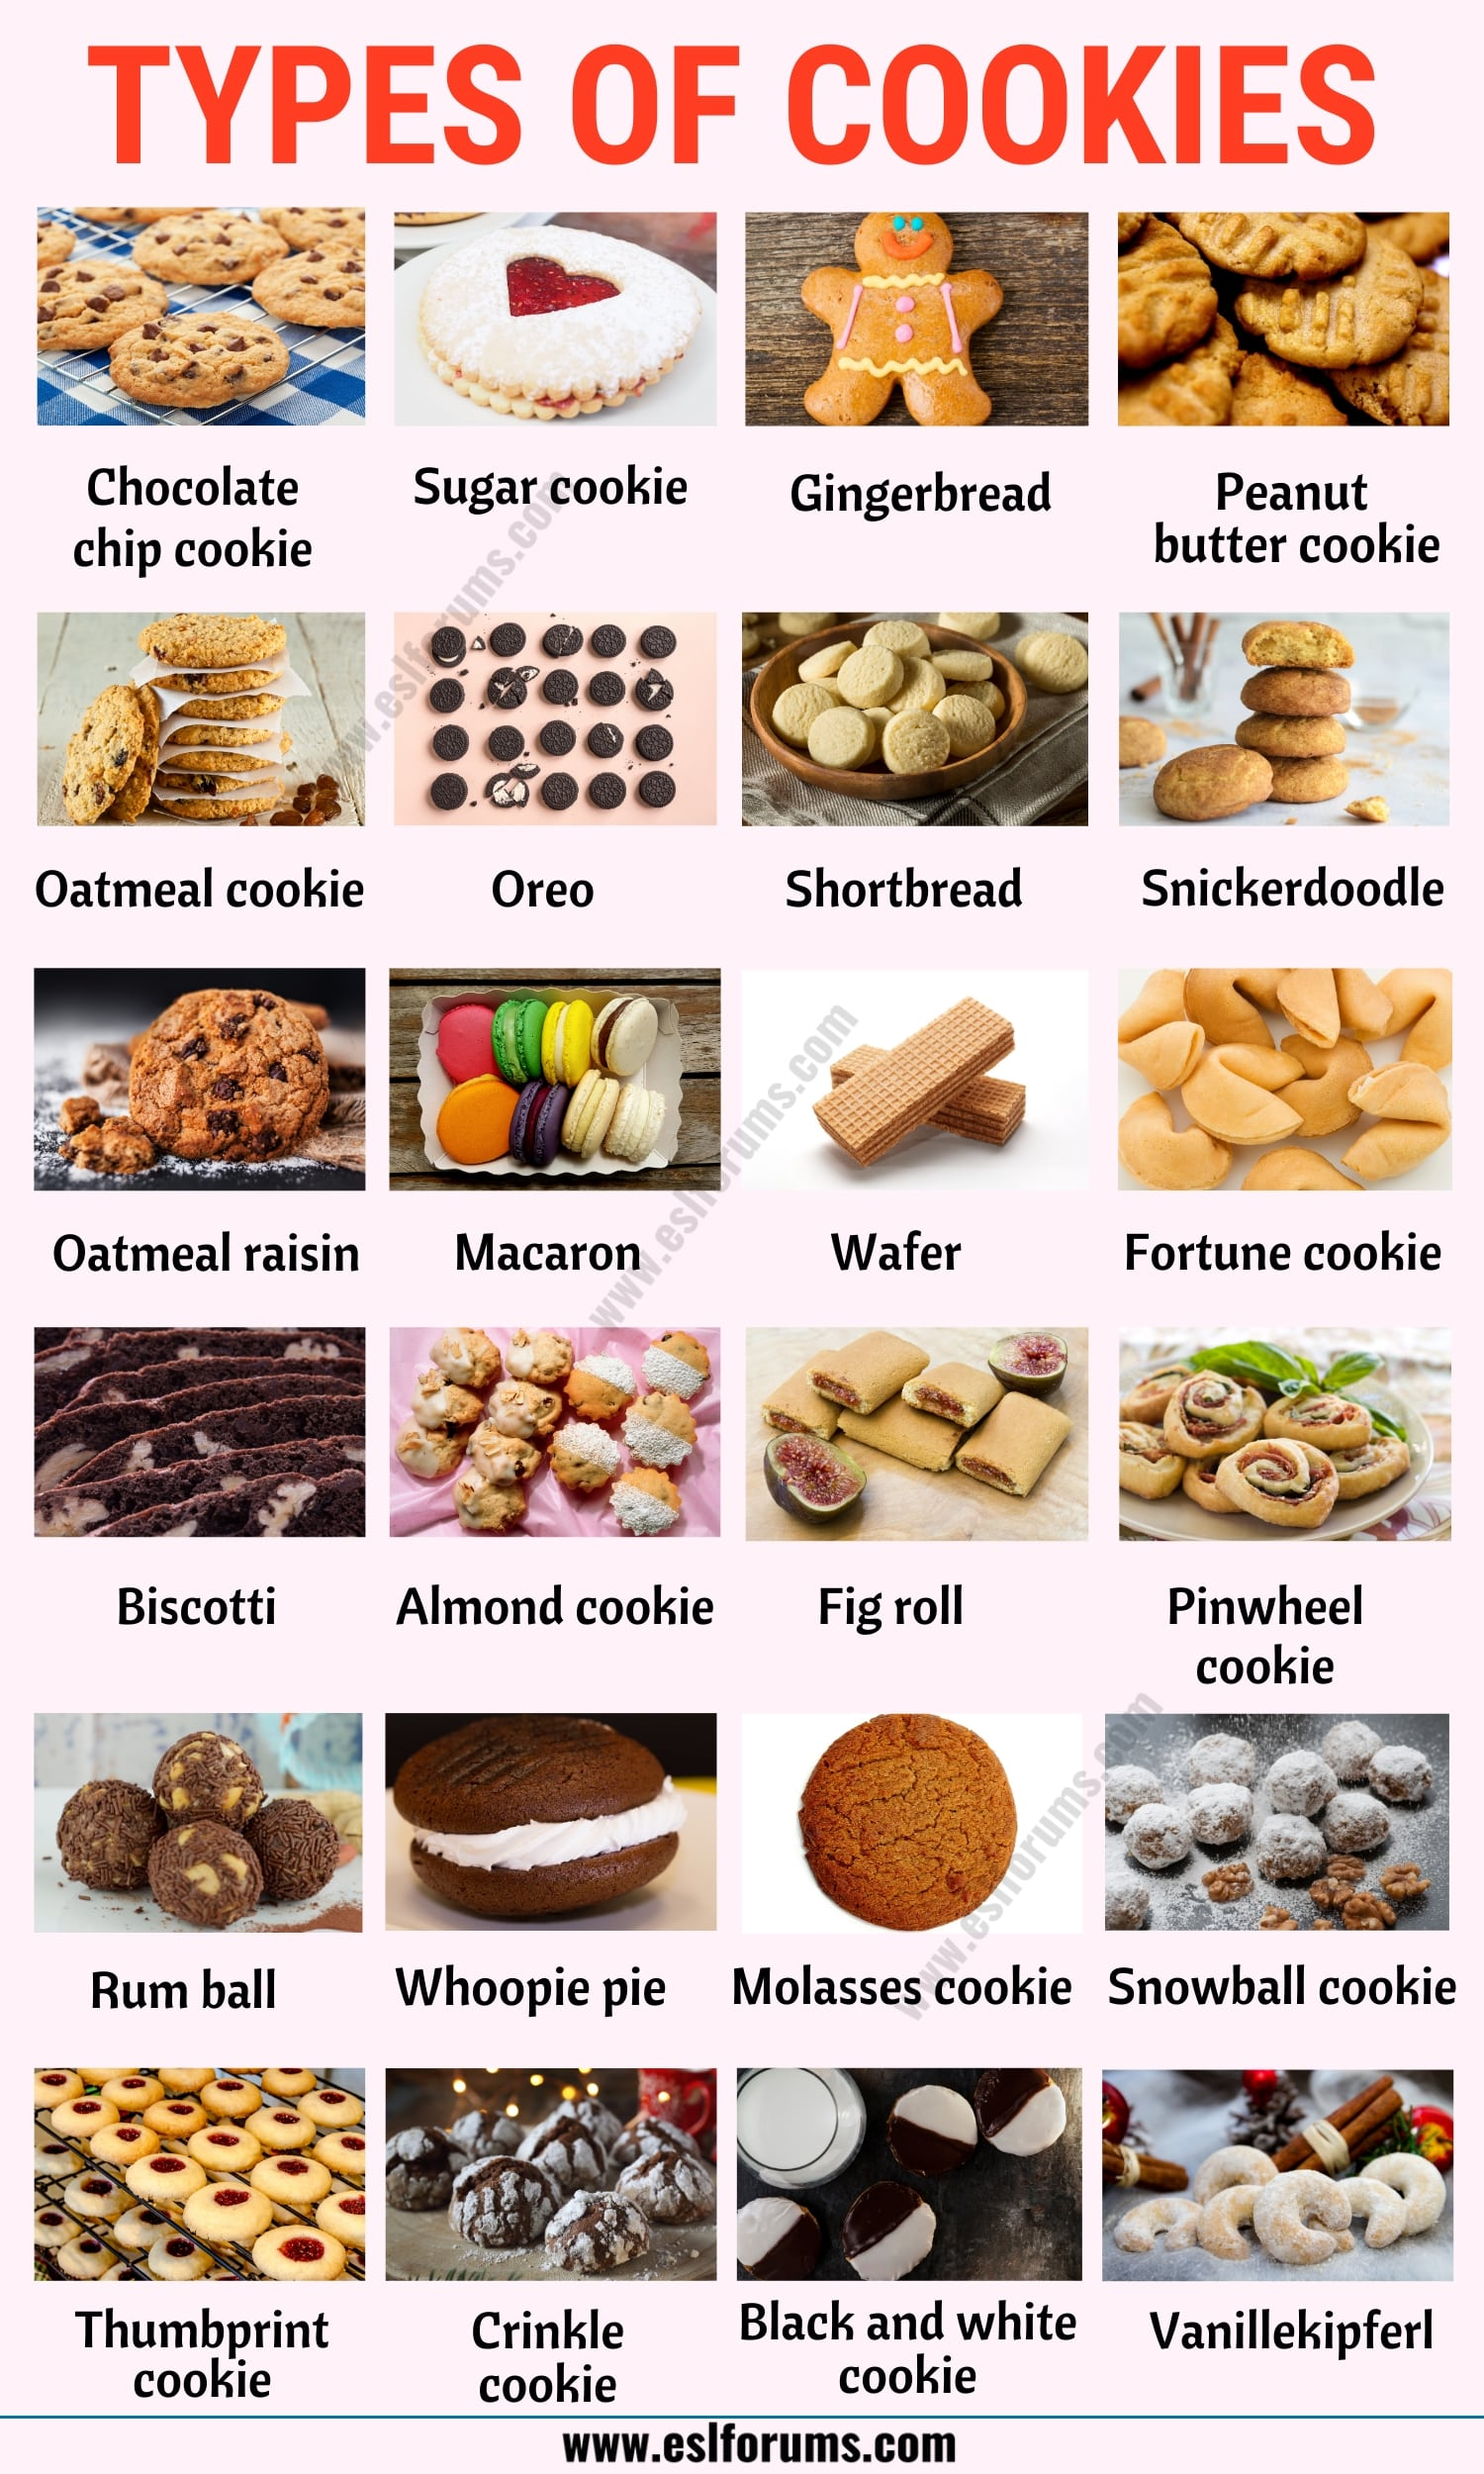 Types of Cookies: List of 20+ Different Types of Cookies with ESL Picture!